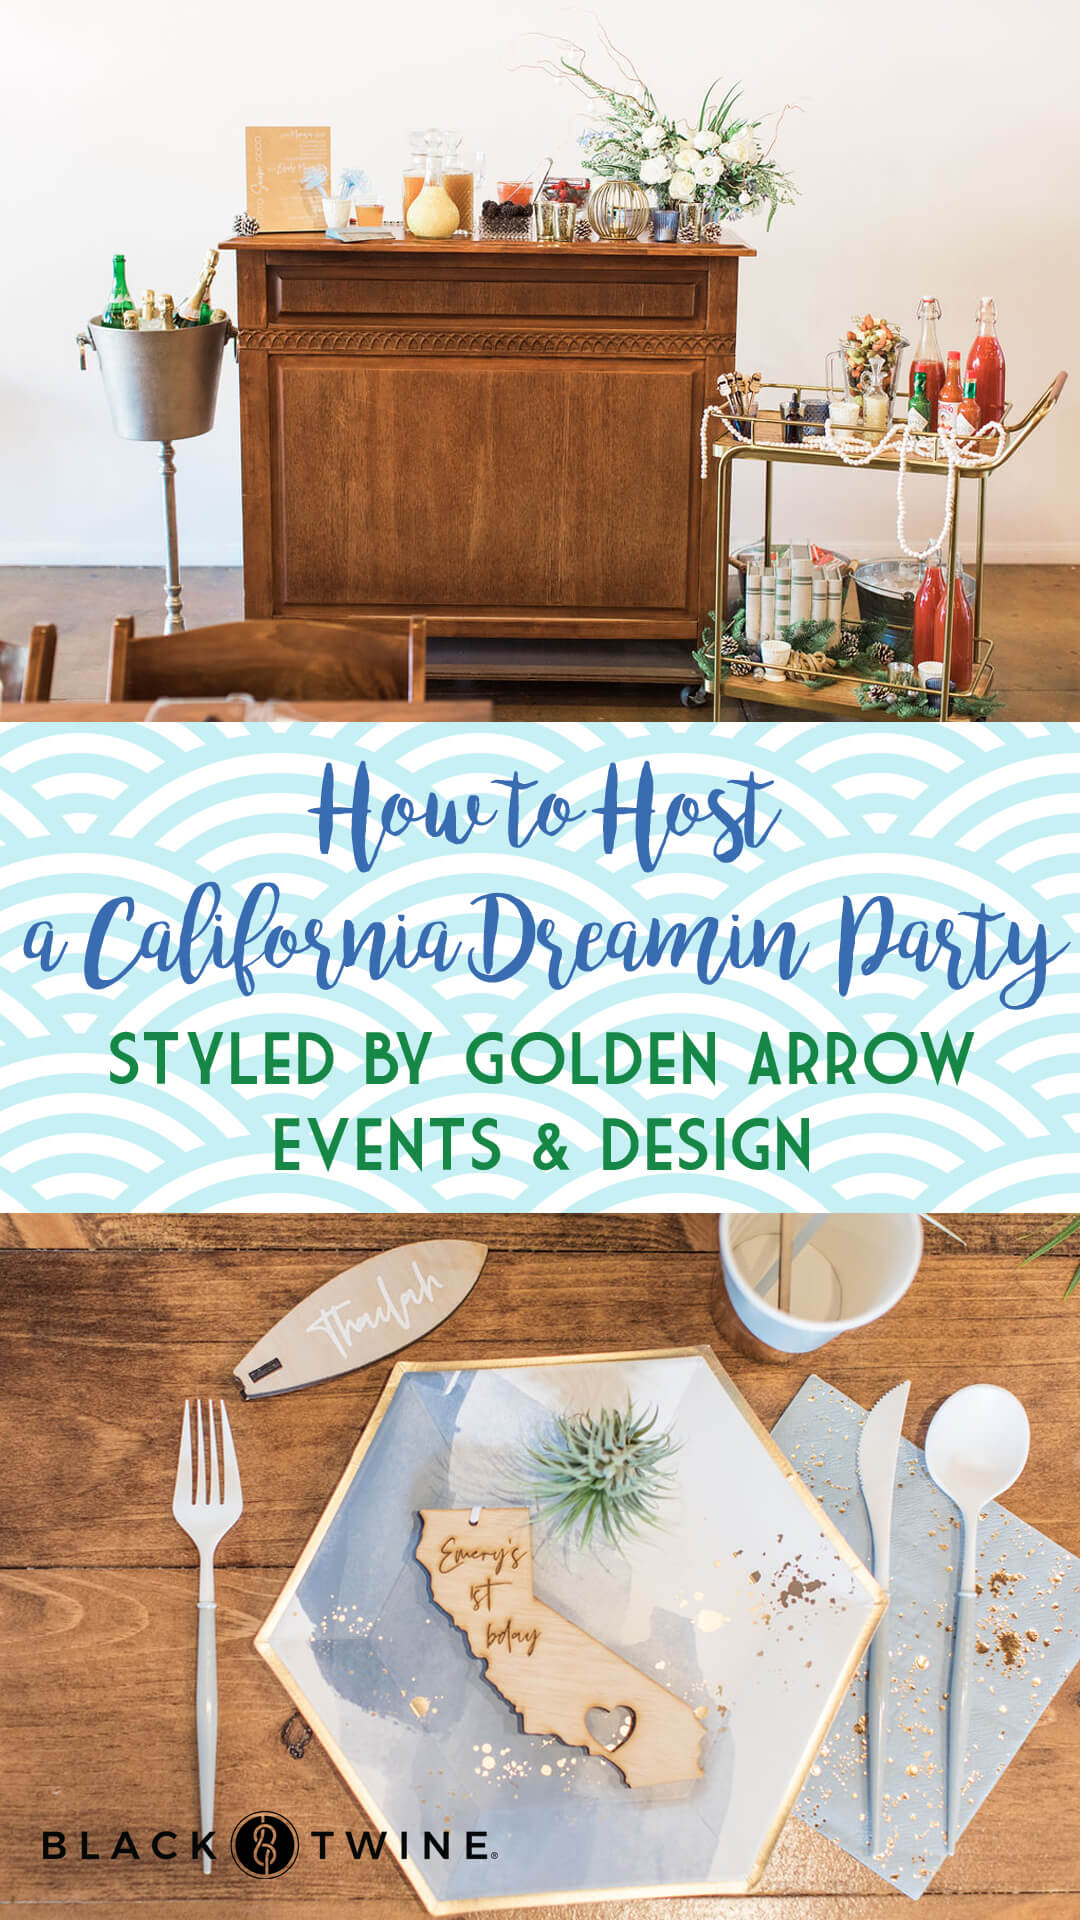 Mini Bar and Place Setting from California Dreamin' Party Styled by Golden Arrow Events & Design